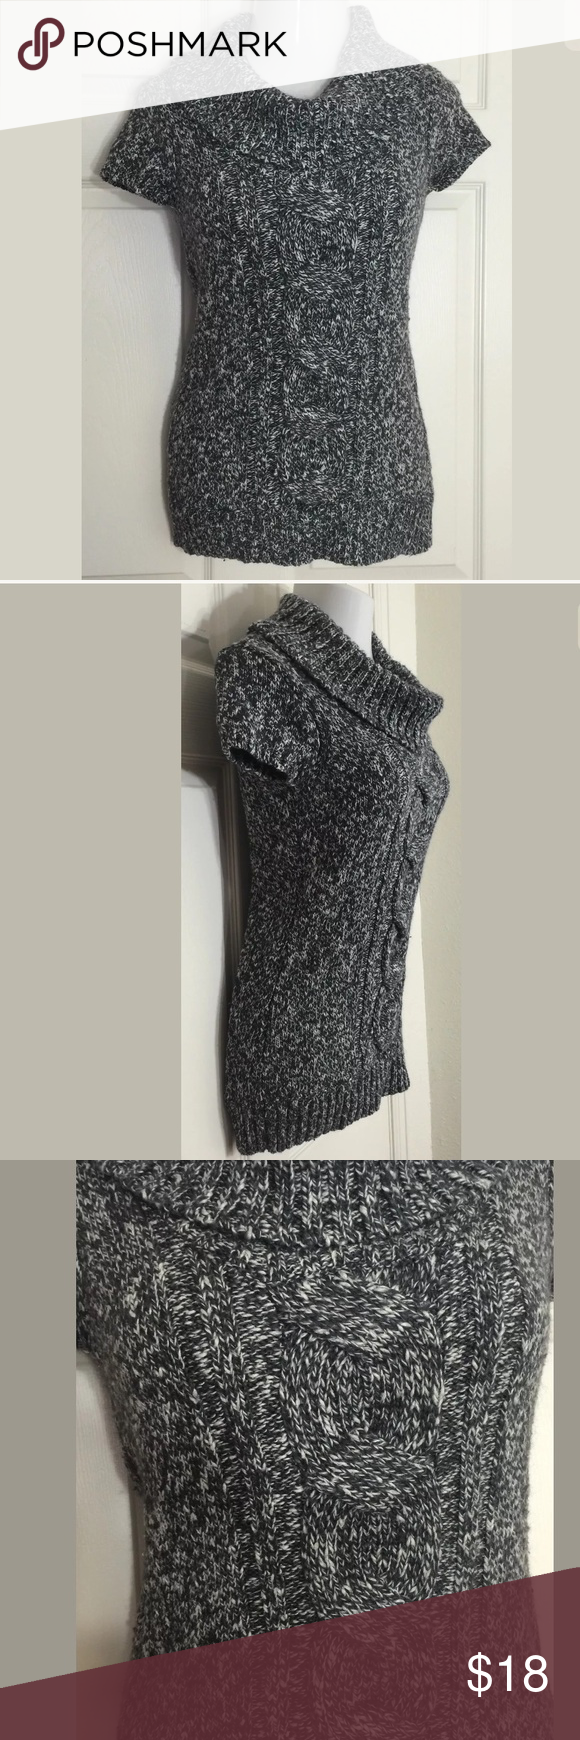 INC International Concepts Gray Cowl-Neck Sweater Cute dressy ...